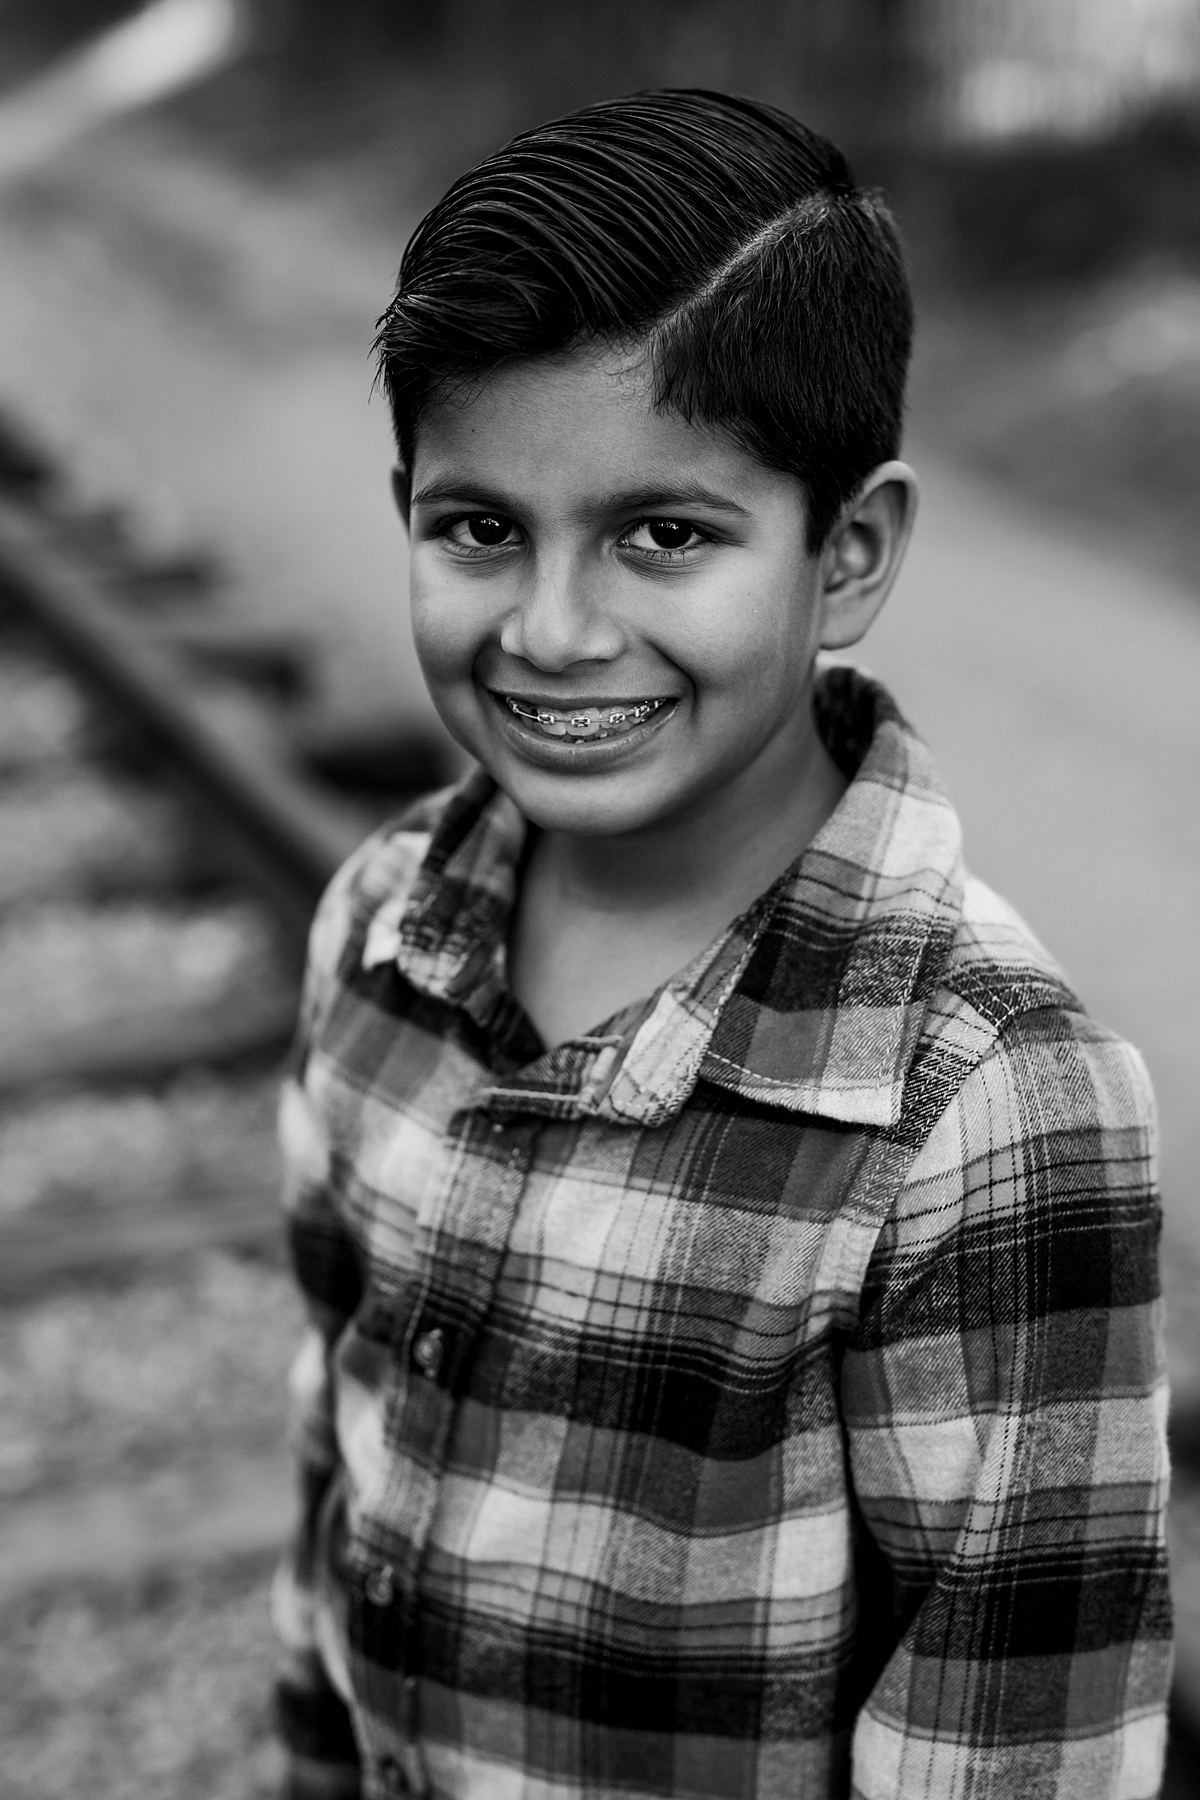 Orange County family photographer. Black and white portrait of sweet boy with adorable braces as he stands on abandoned railway tracks during outdoor family photo shoot in orange county